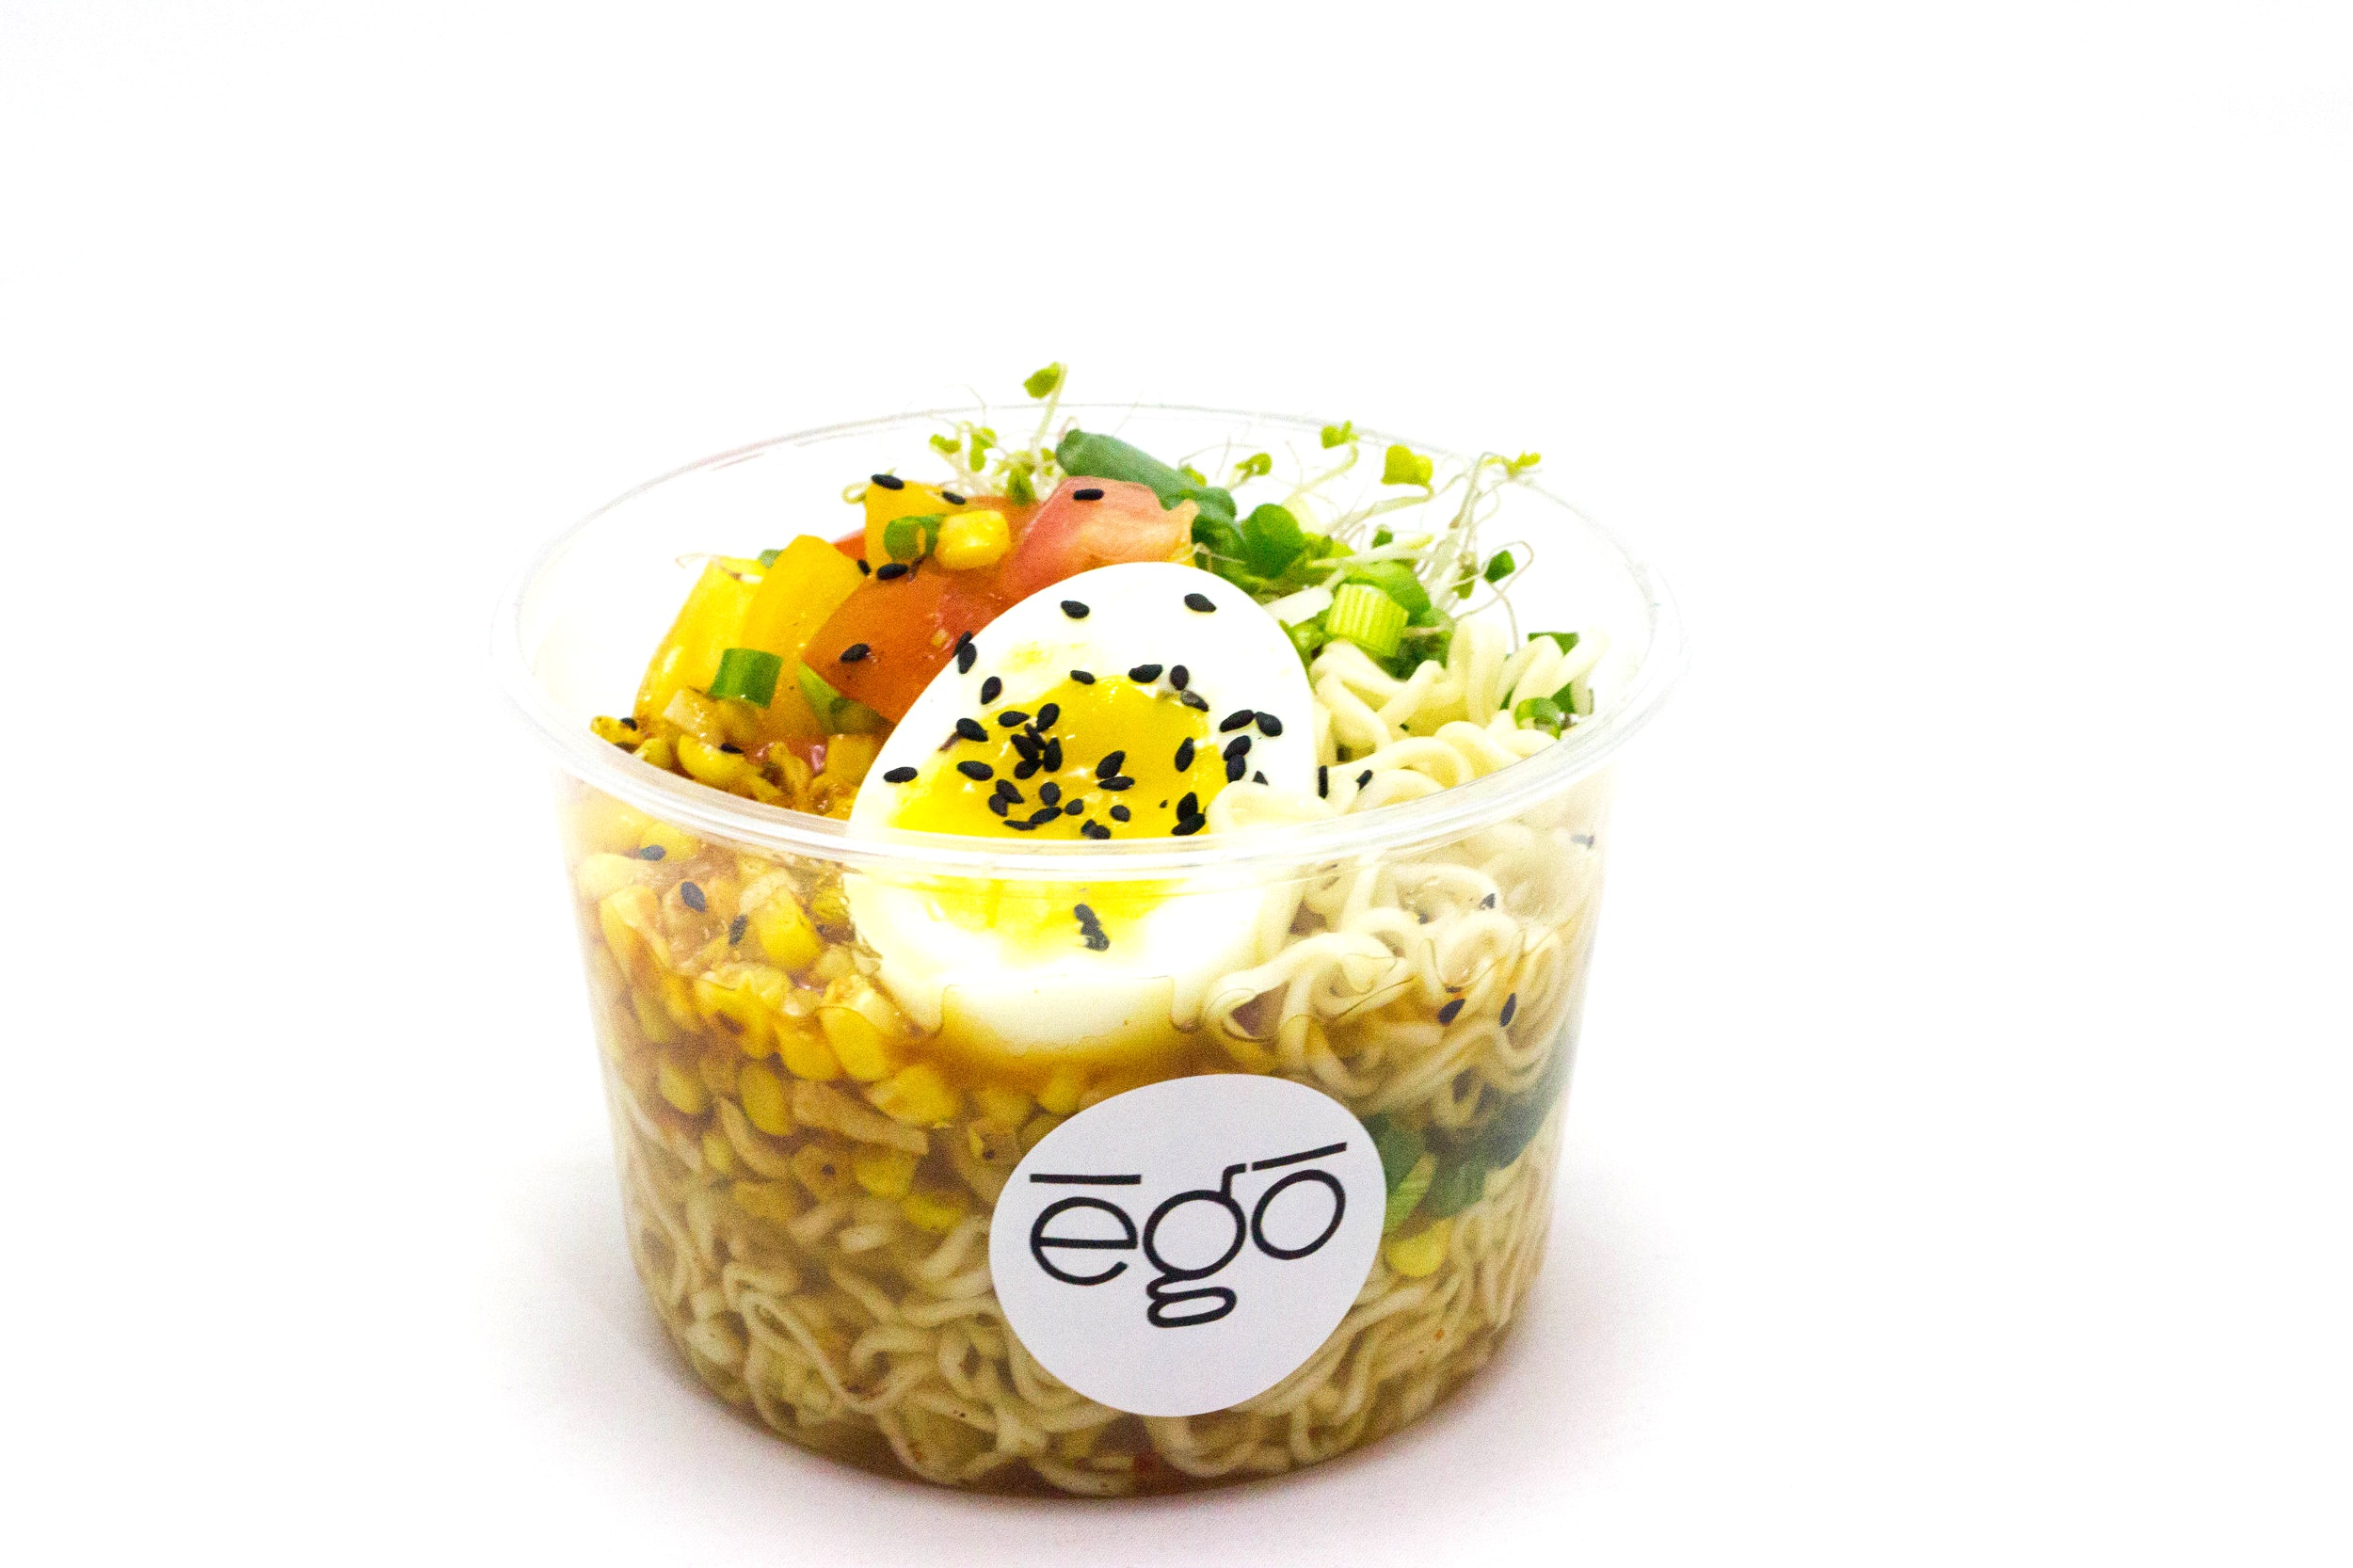 Ego Ramen - Chicken broth, ramen noodles, medium boiled egg, green onion, bell pepper, corn and sprouts, served chilled or heated